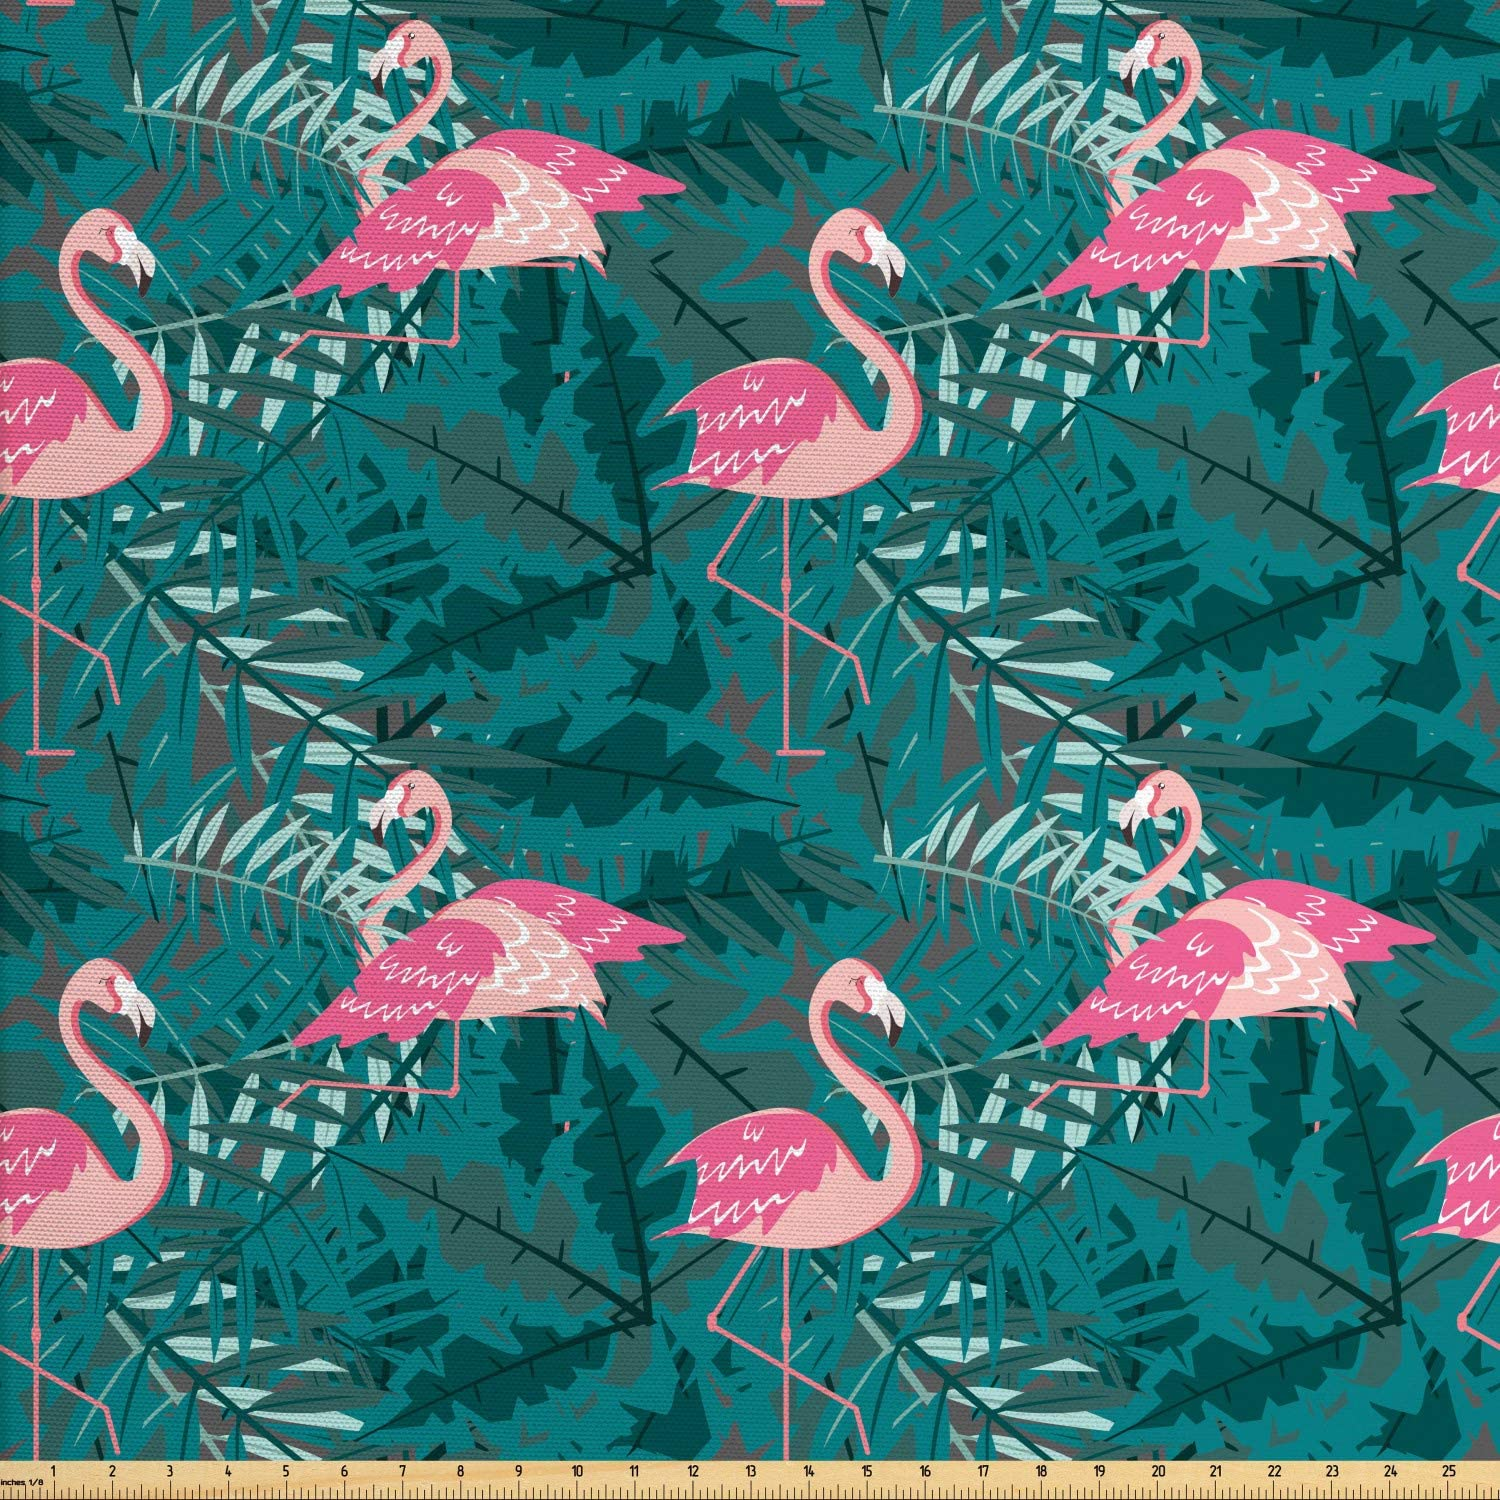 Ambesonne Flamingo Fabric by The Yard, Repeating Exotic Pattern of Tropic Birds on Leaves Island Setting Creatures, Decorative Fabric for Upholstery and Home Accents, 1 Yard, Teal and Pink